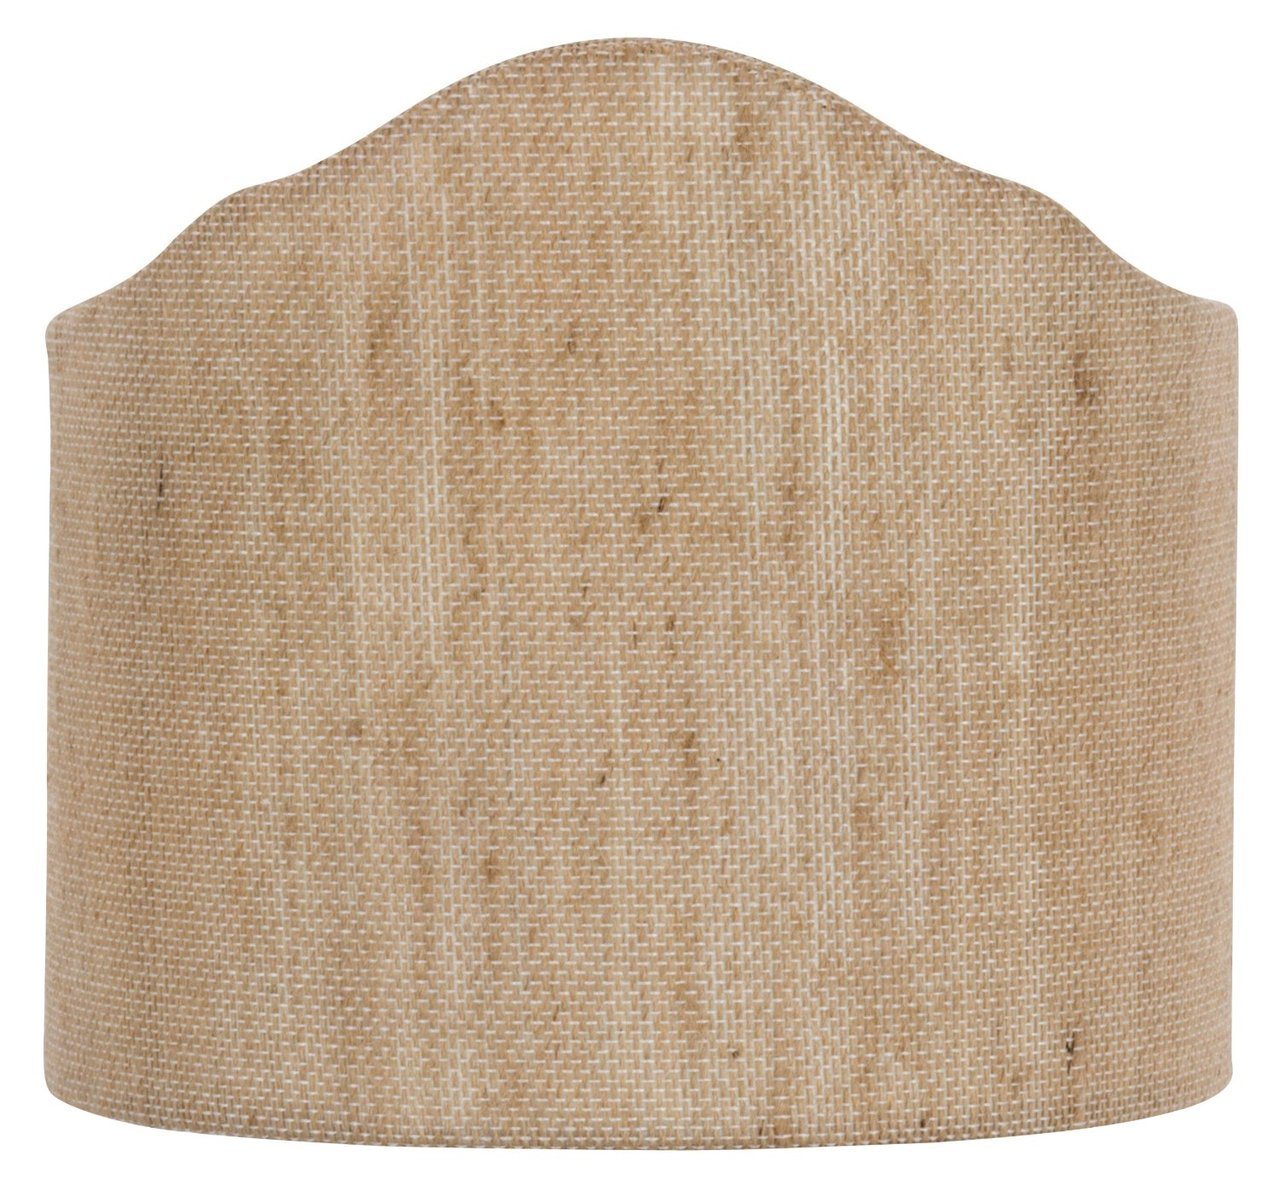 Upgradelights Wall Sconce Clip on Shield Lamp Shade Half Shade Natural Beige Linen Clips Onto Bulb